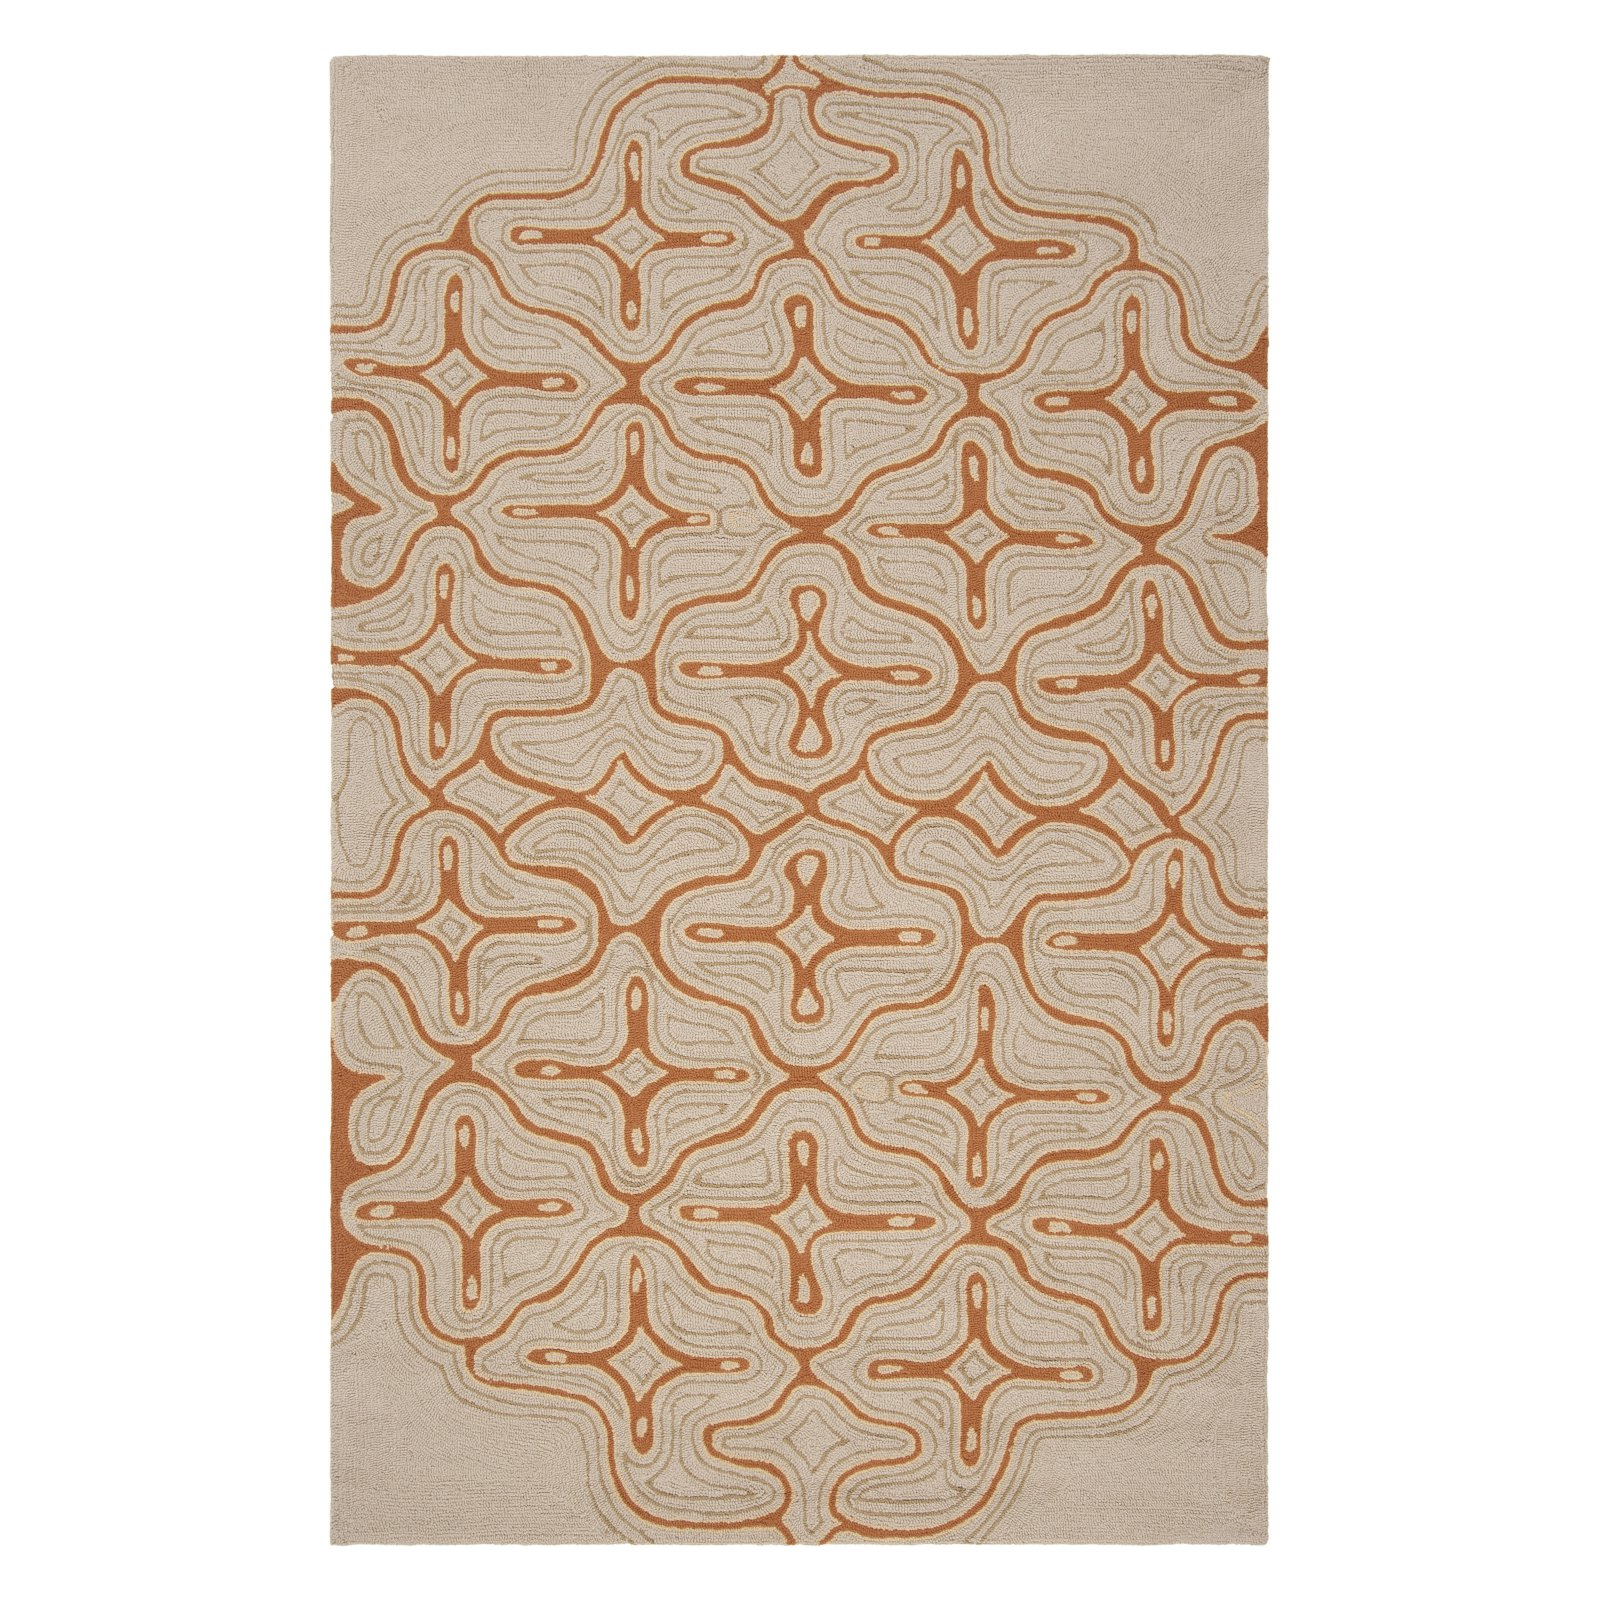 Surya Labrinth 3 Indoor / Outdoor Rug